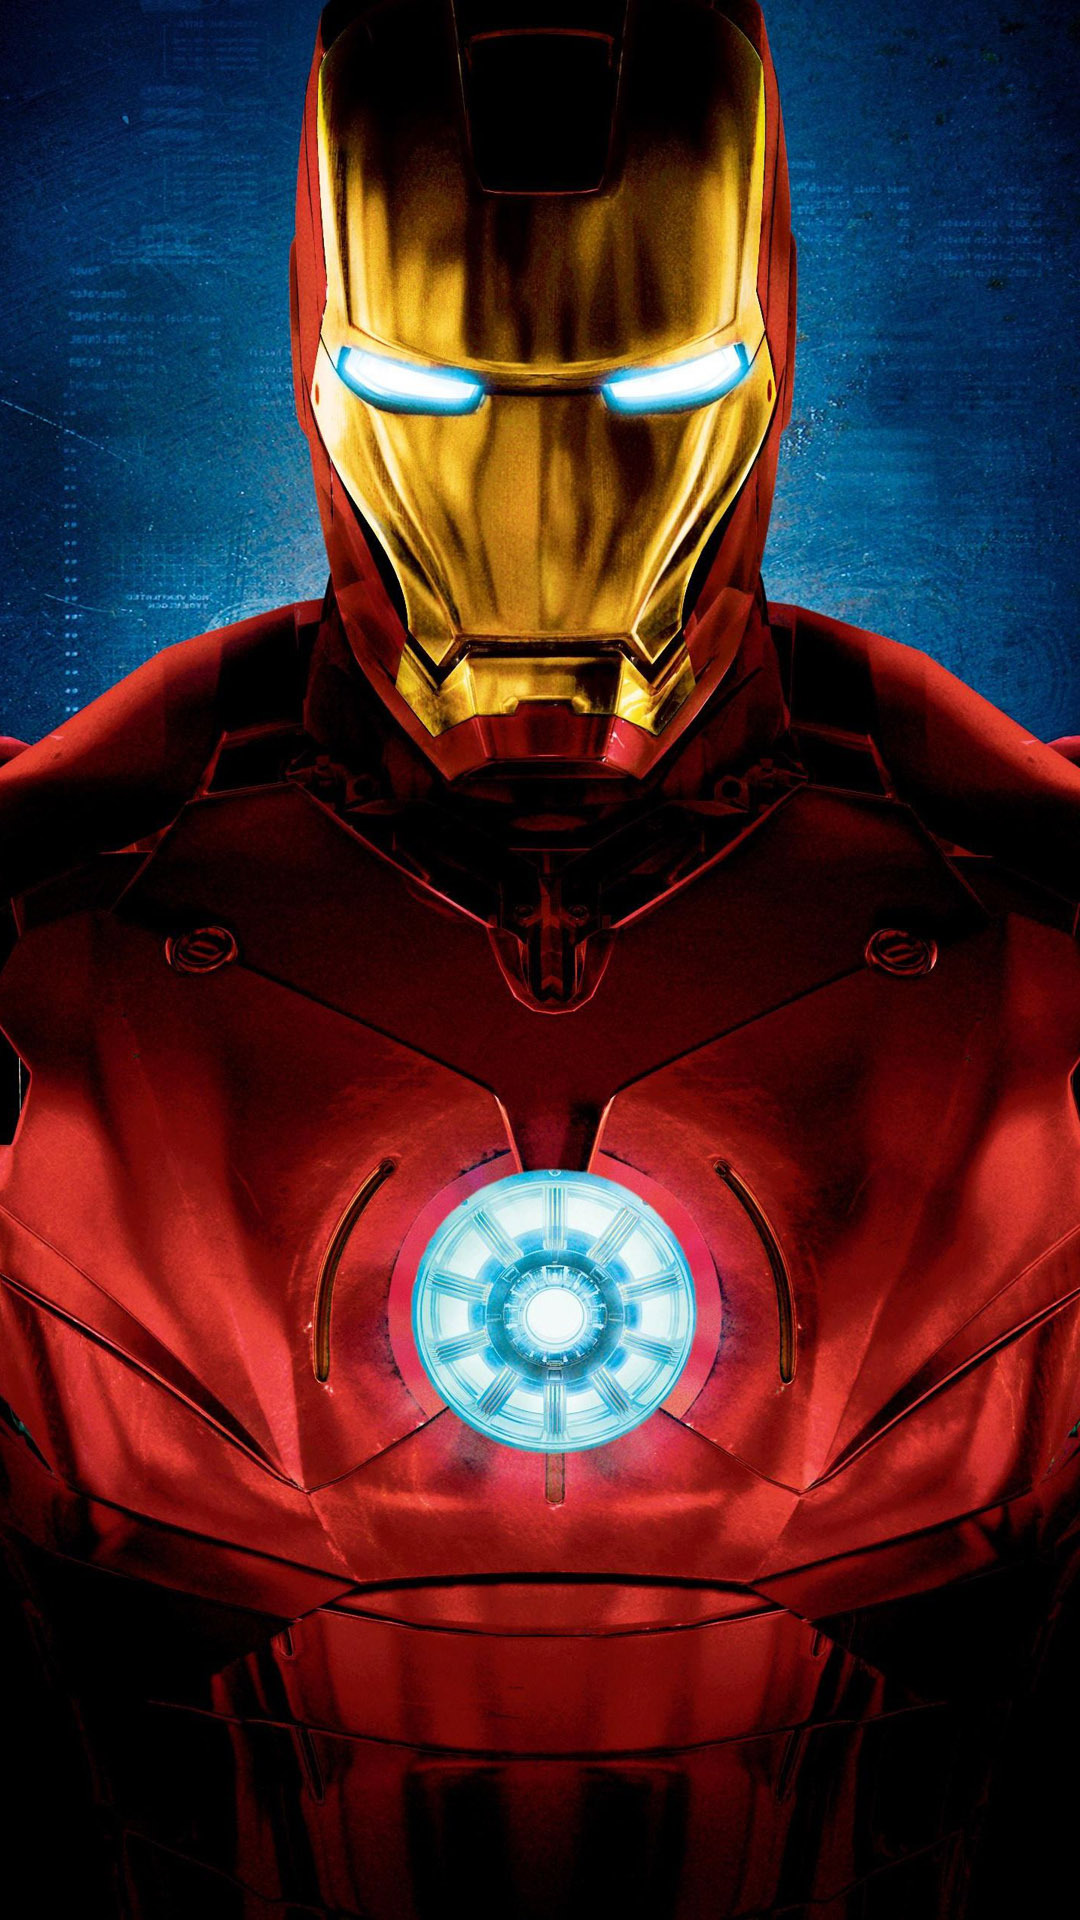 Iron Man Suit Best Htc One M9 Wallpapers Free Download